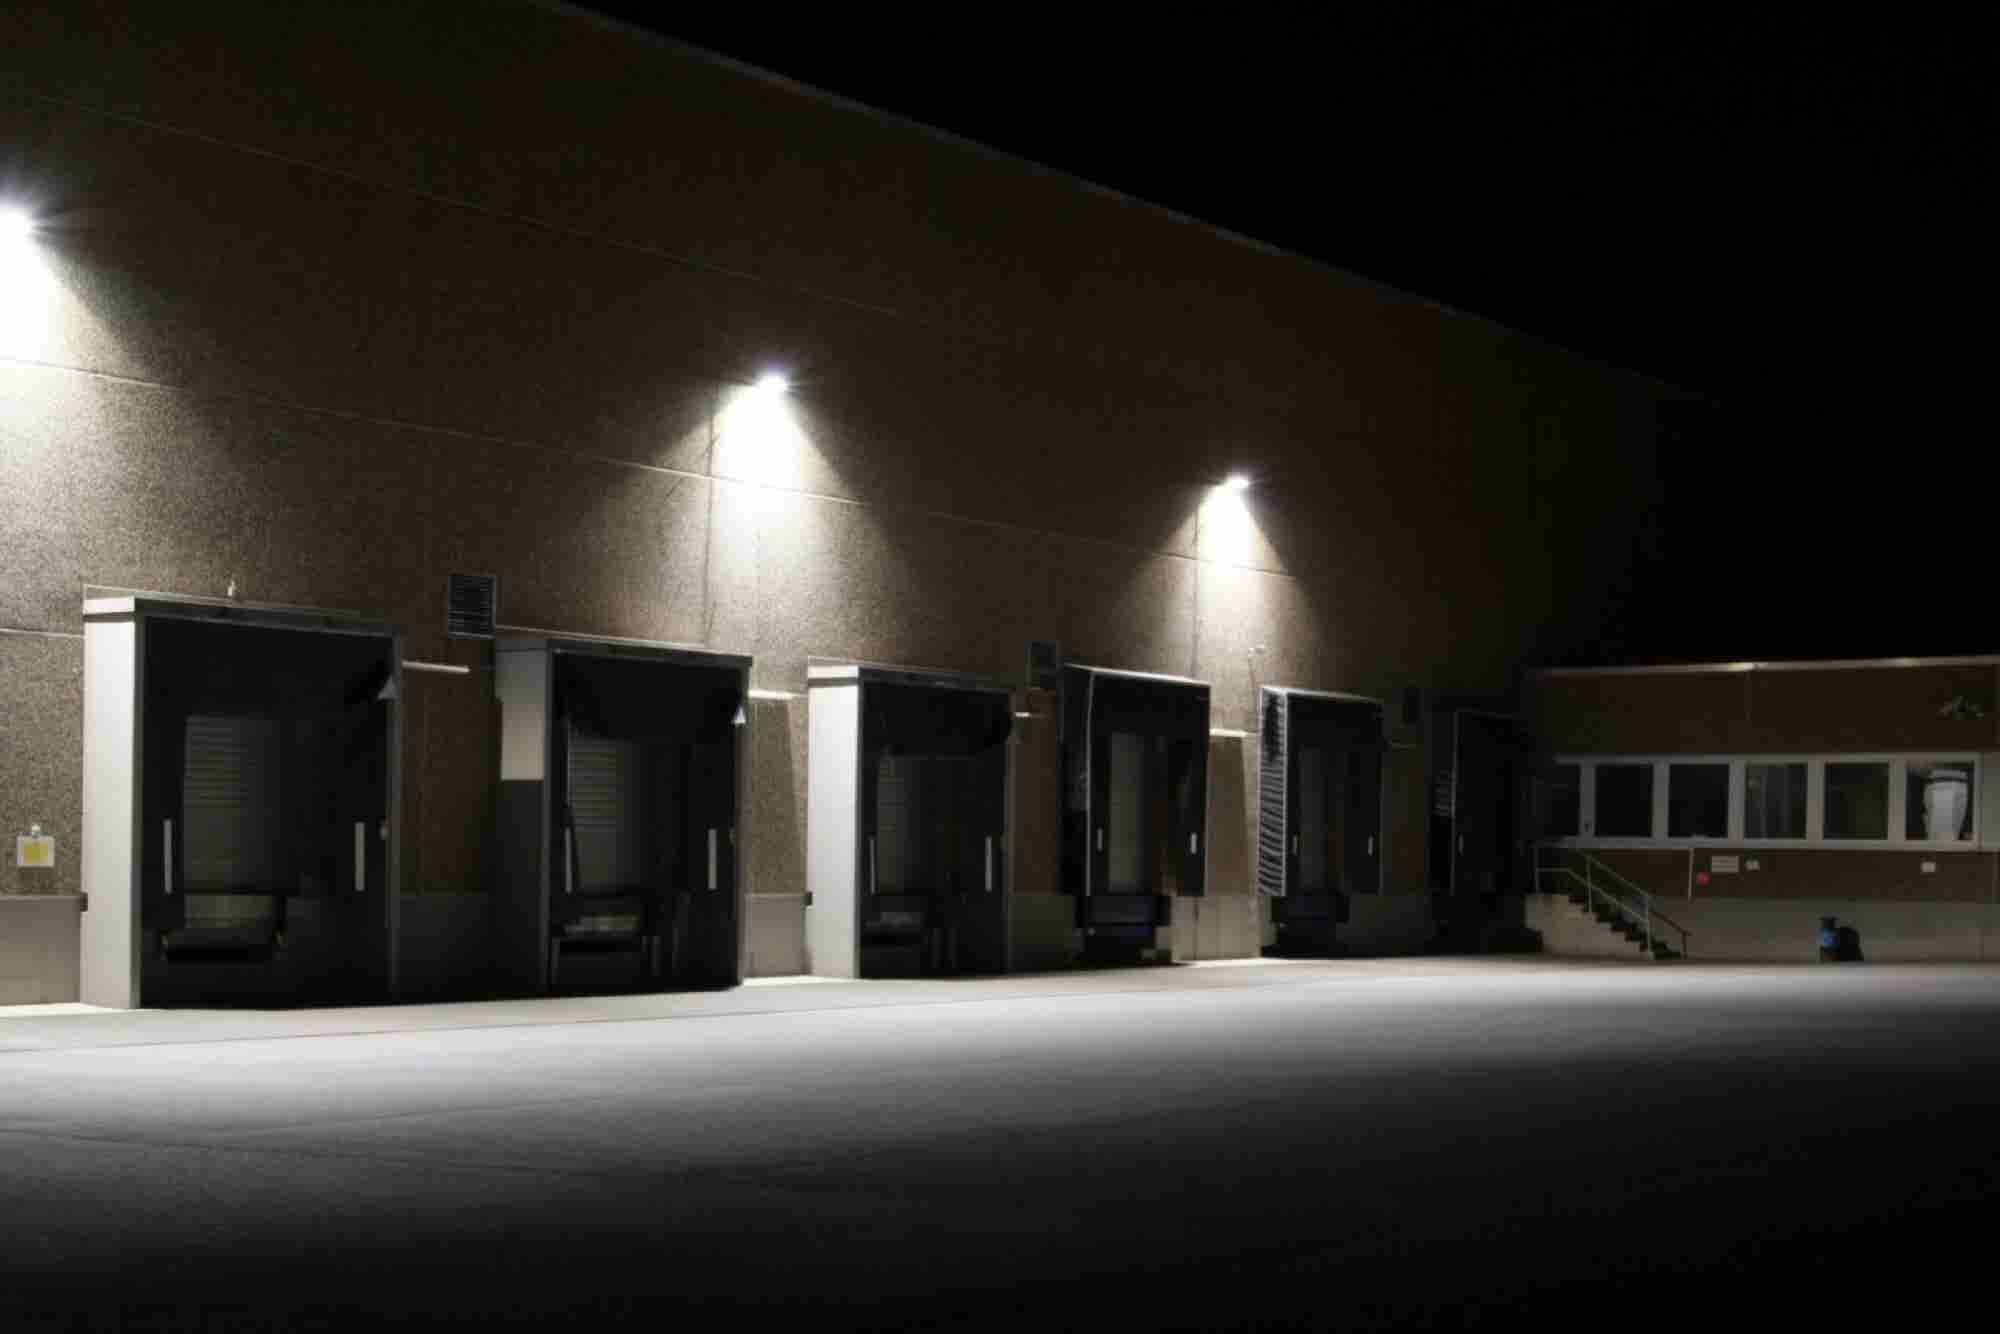 Industrial Real Estate Market Gets Boost With Marijuana Legalization